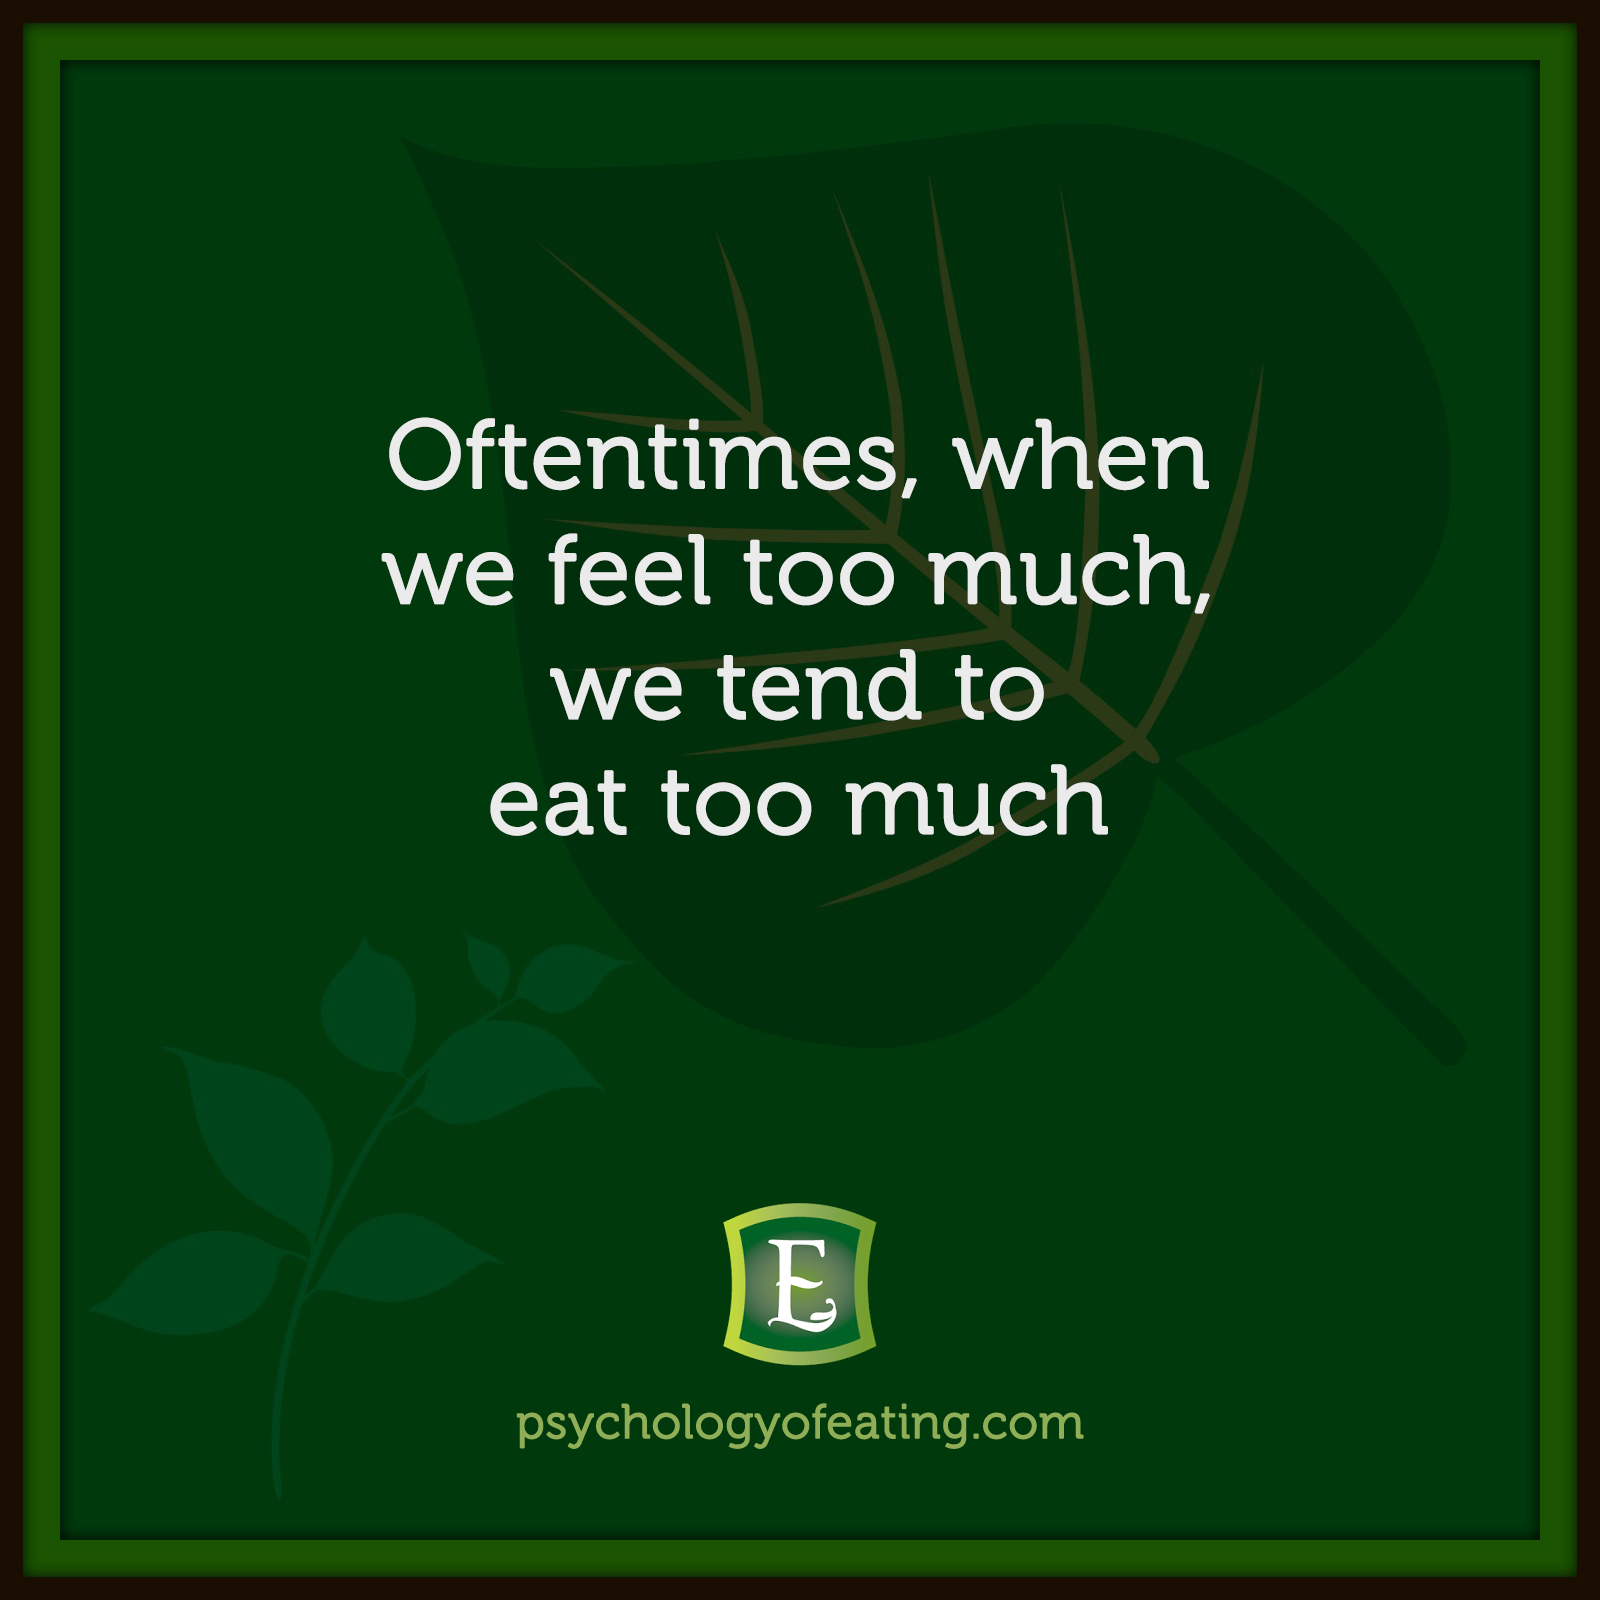 Oftentimes, when we feel too much, we tend to eat too much #health #nutrition #eatingpsychology #IPE